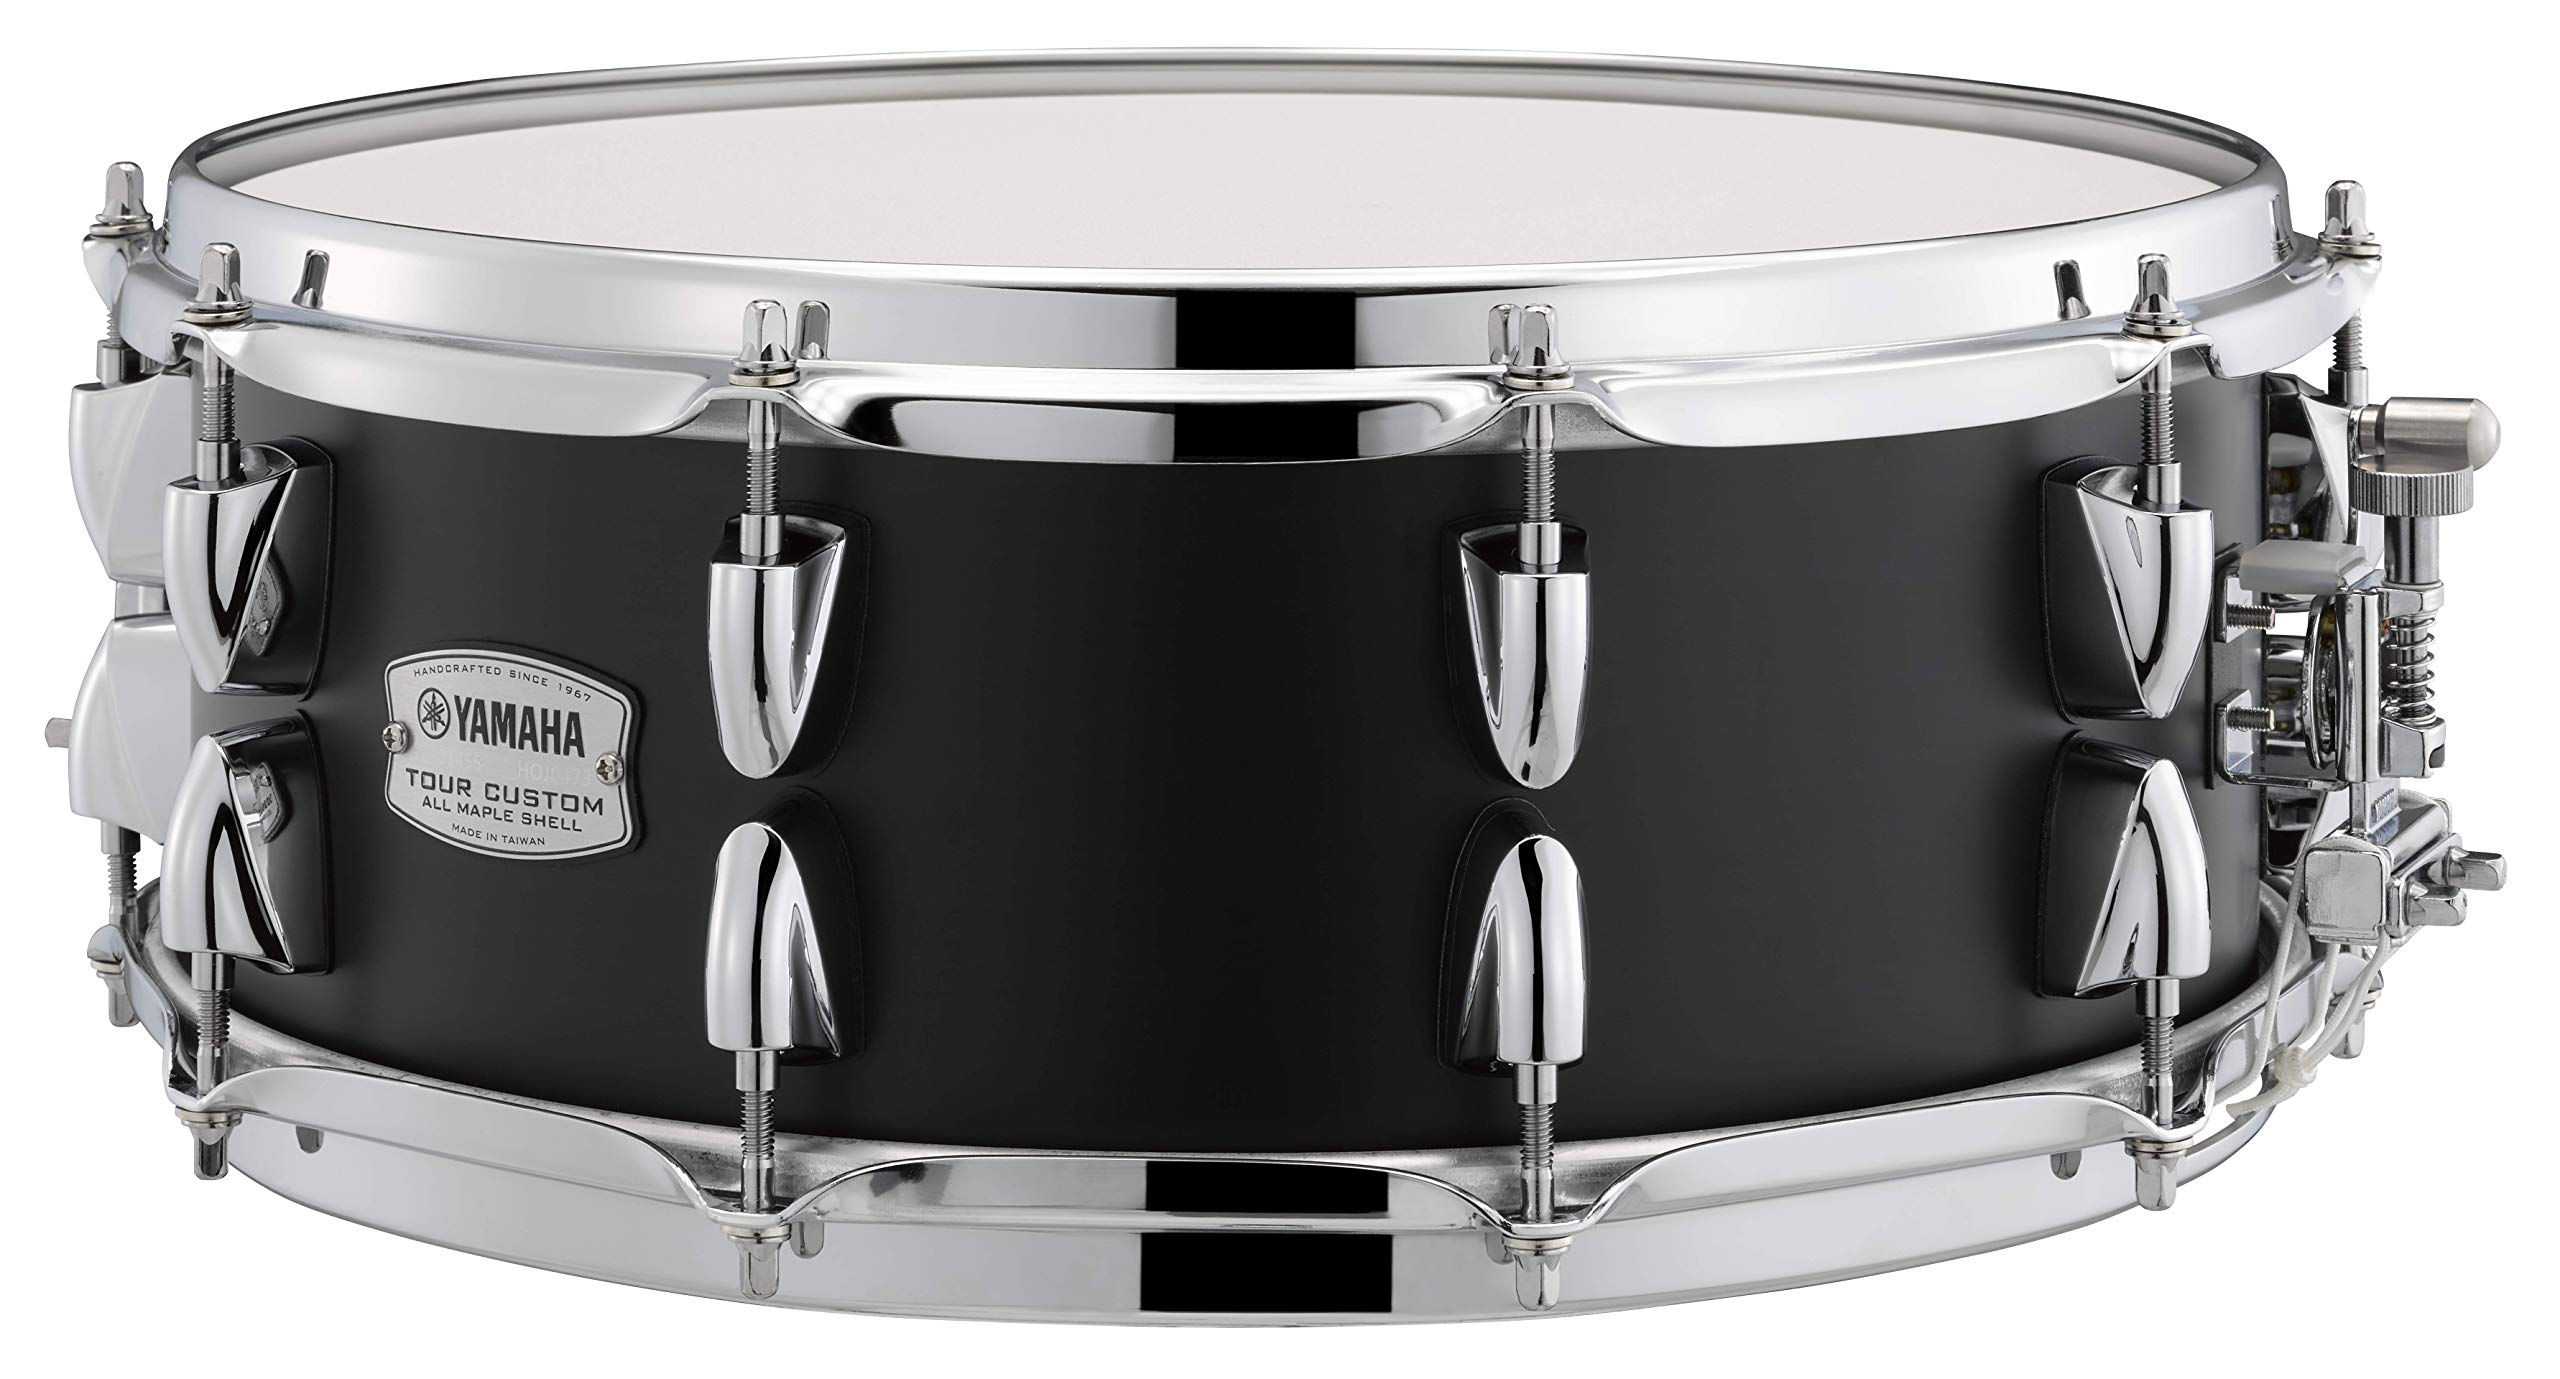 Yamaha Tour Custom Maple 14'' x 5.5'' Snare Drum, Licorice Satin by YAMAHA